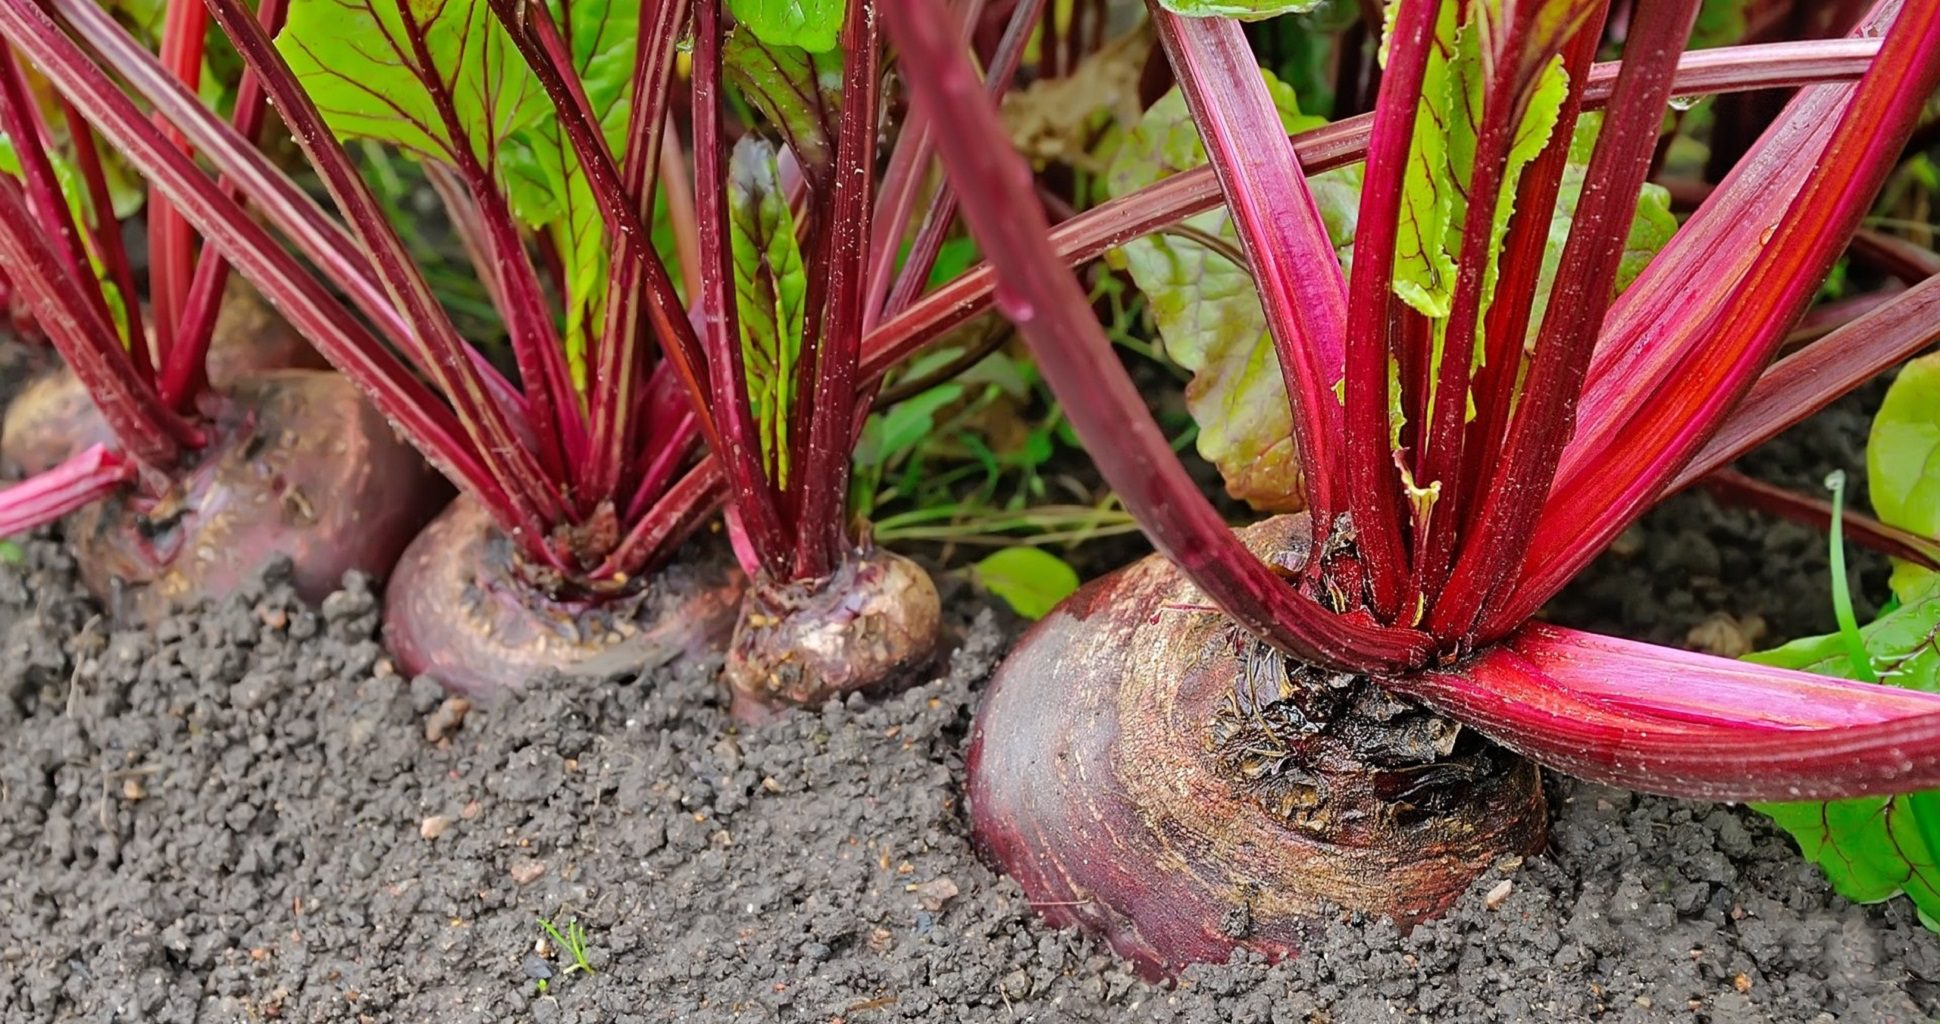 Guide To Growing Beets